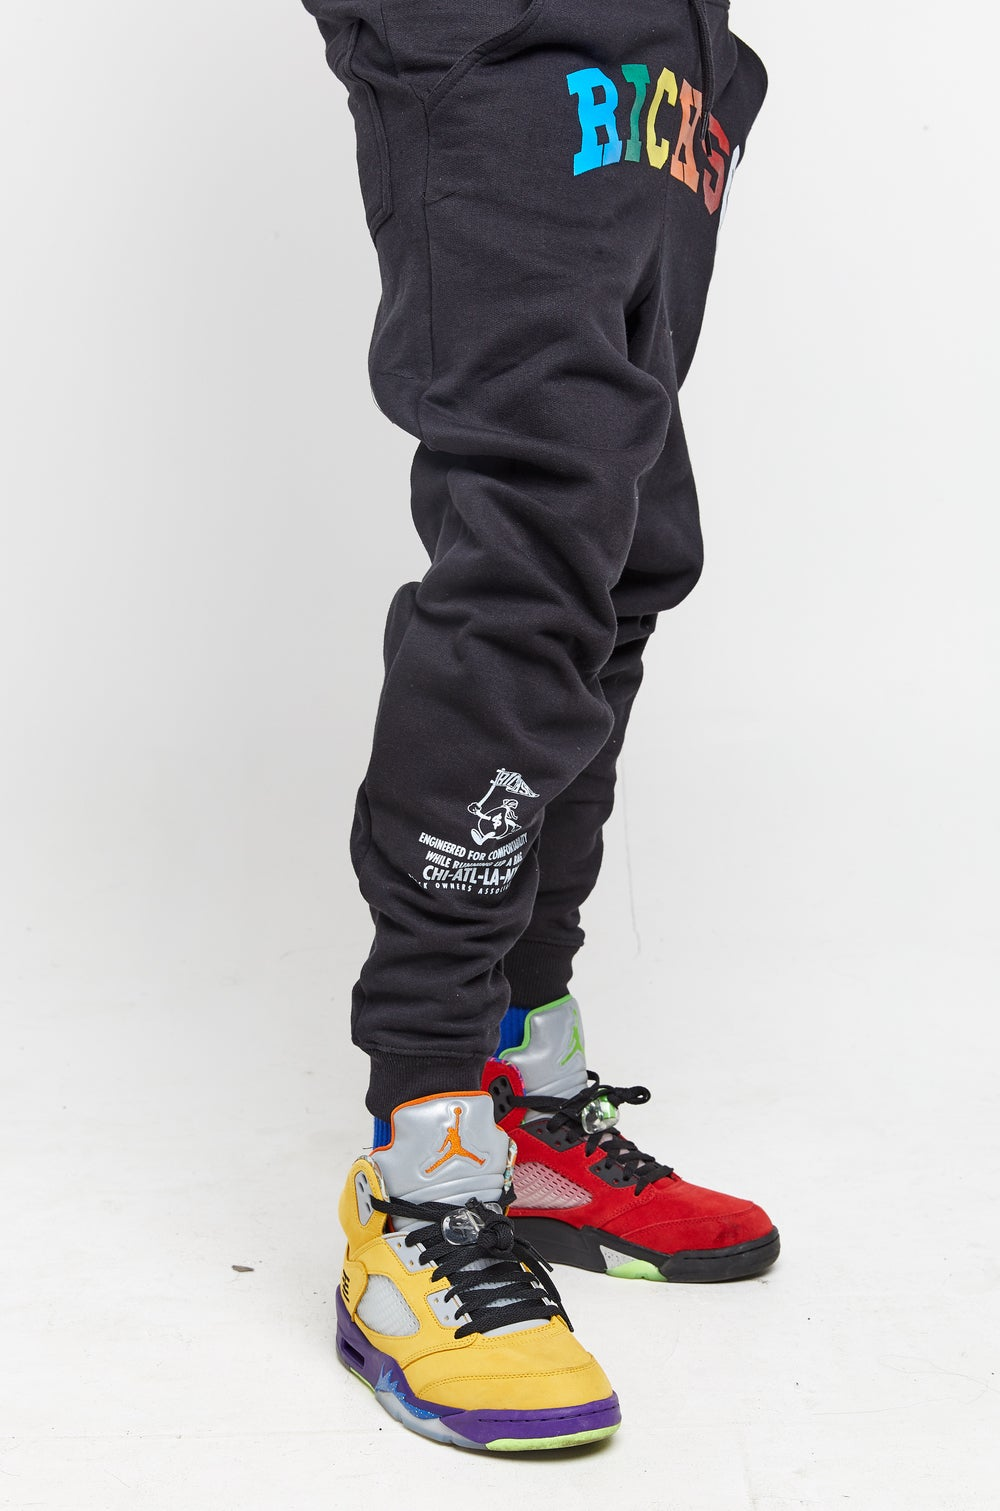 Image of RICHSO Multi Color Jogging Suit